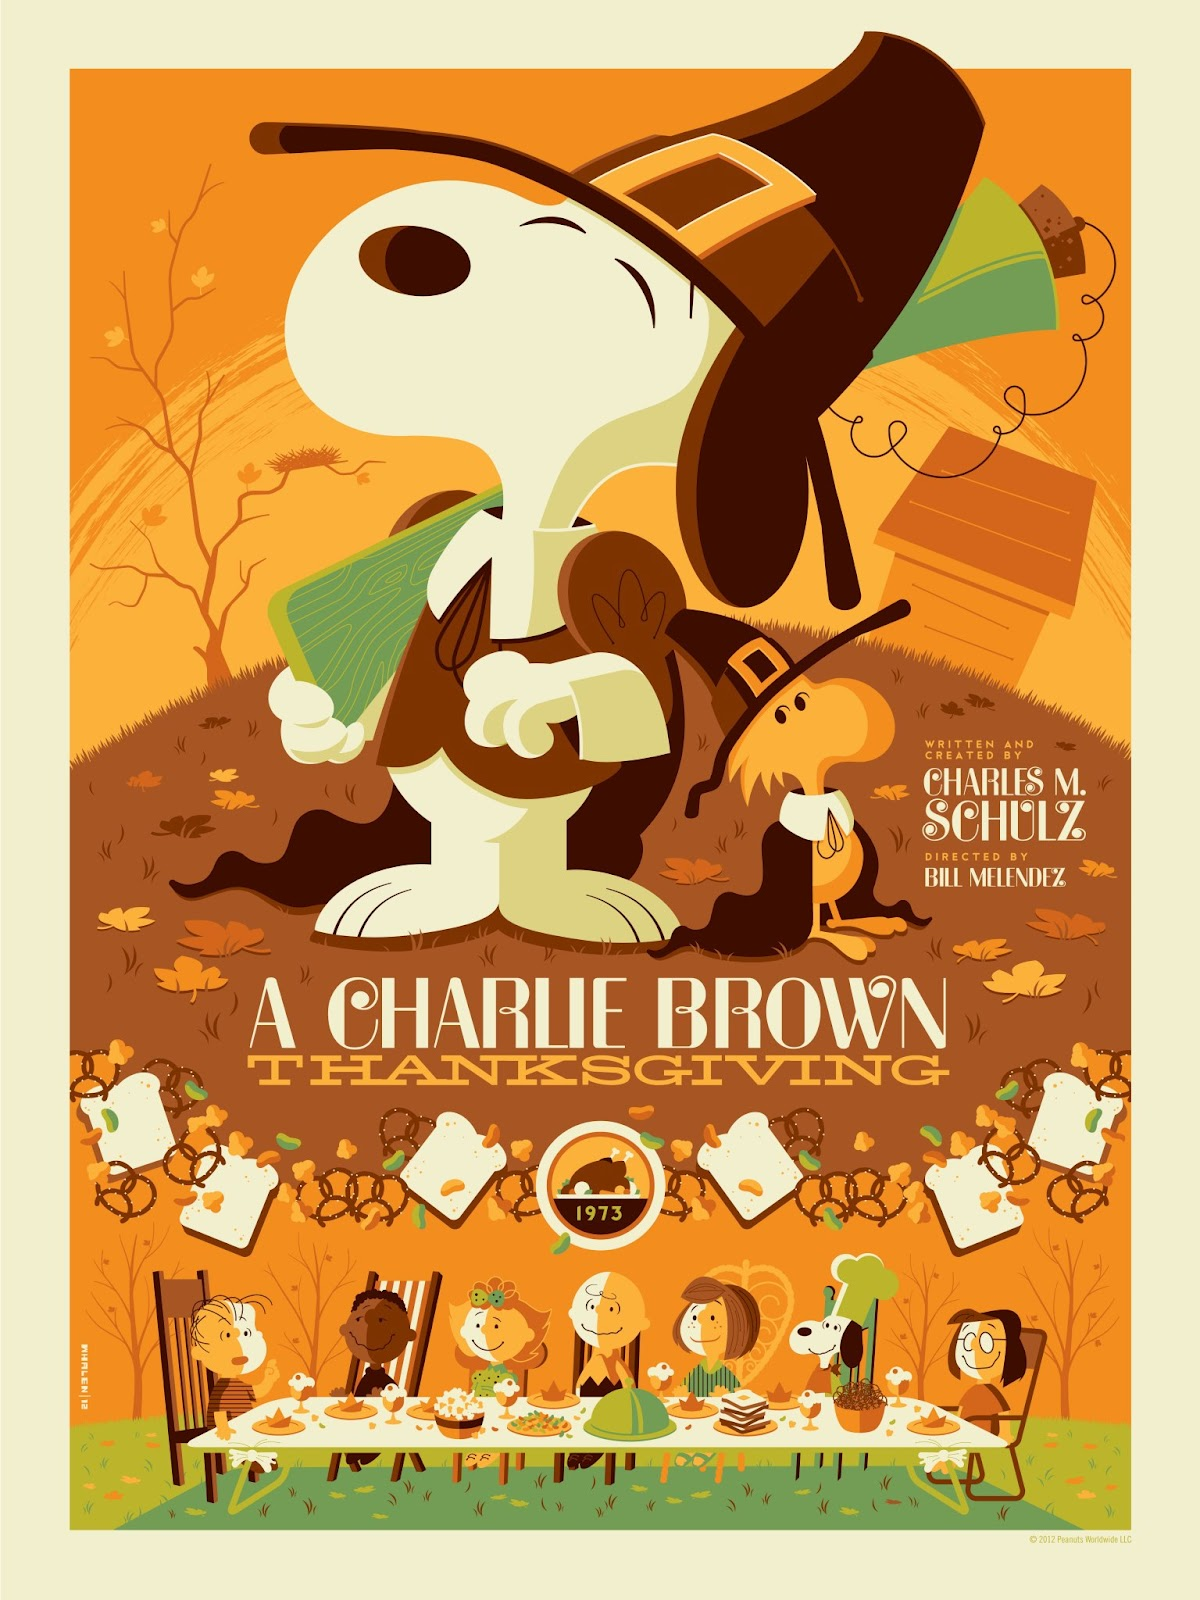 The Blot Says A Charlie Brown Thanksgiving Screen Prints by 1200x1600